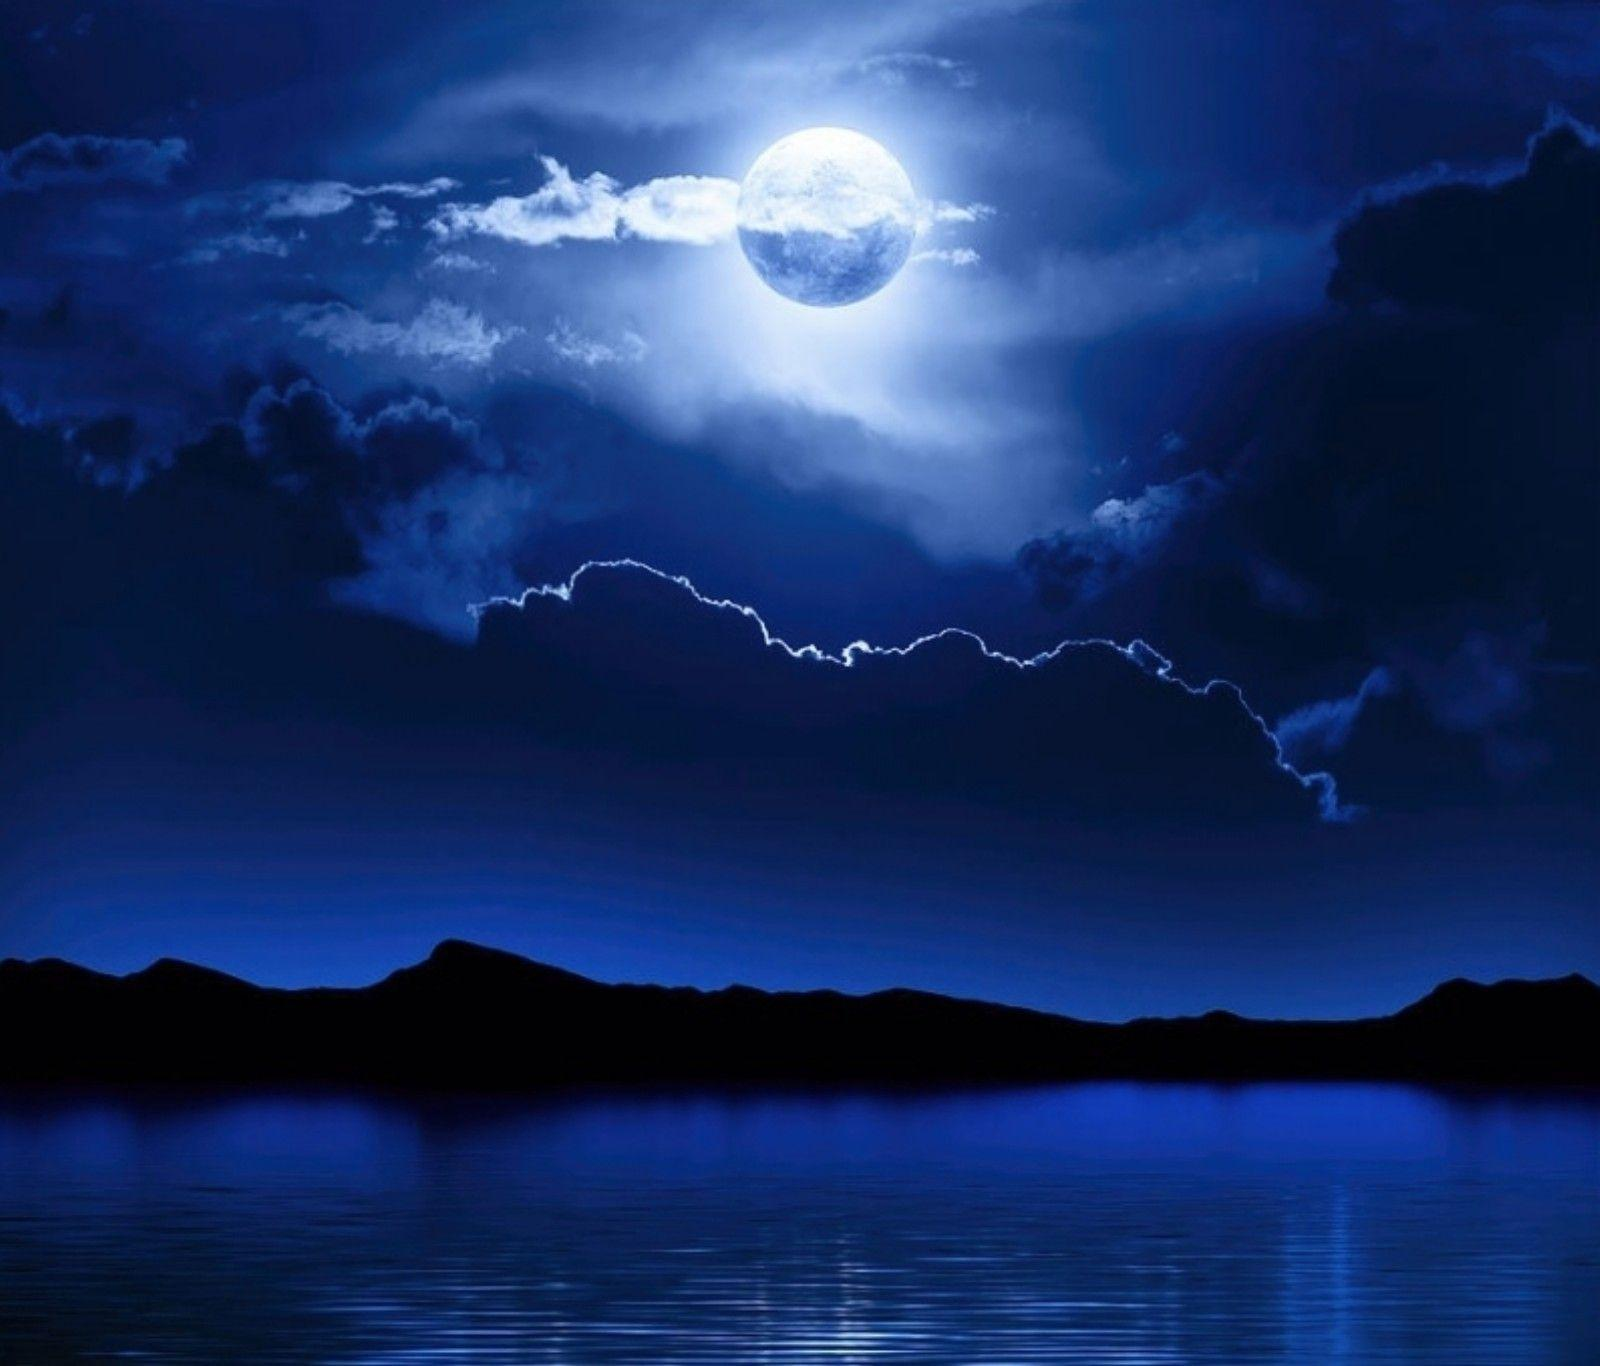 Sky: Water Blue Moon Night Clouds Sky Wallpapers Cloudy for HD 16:9